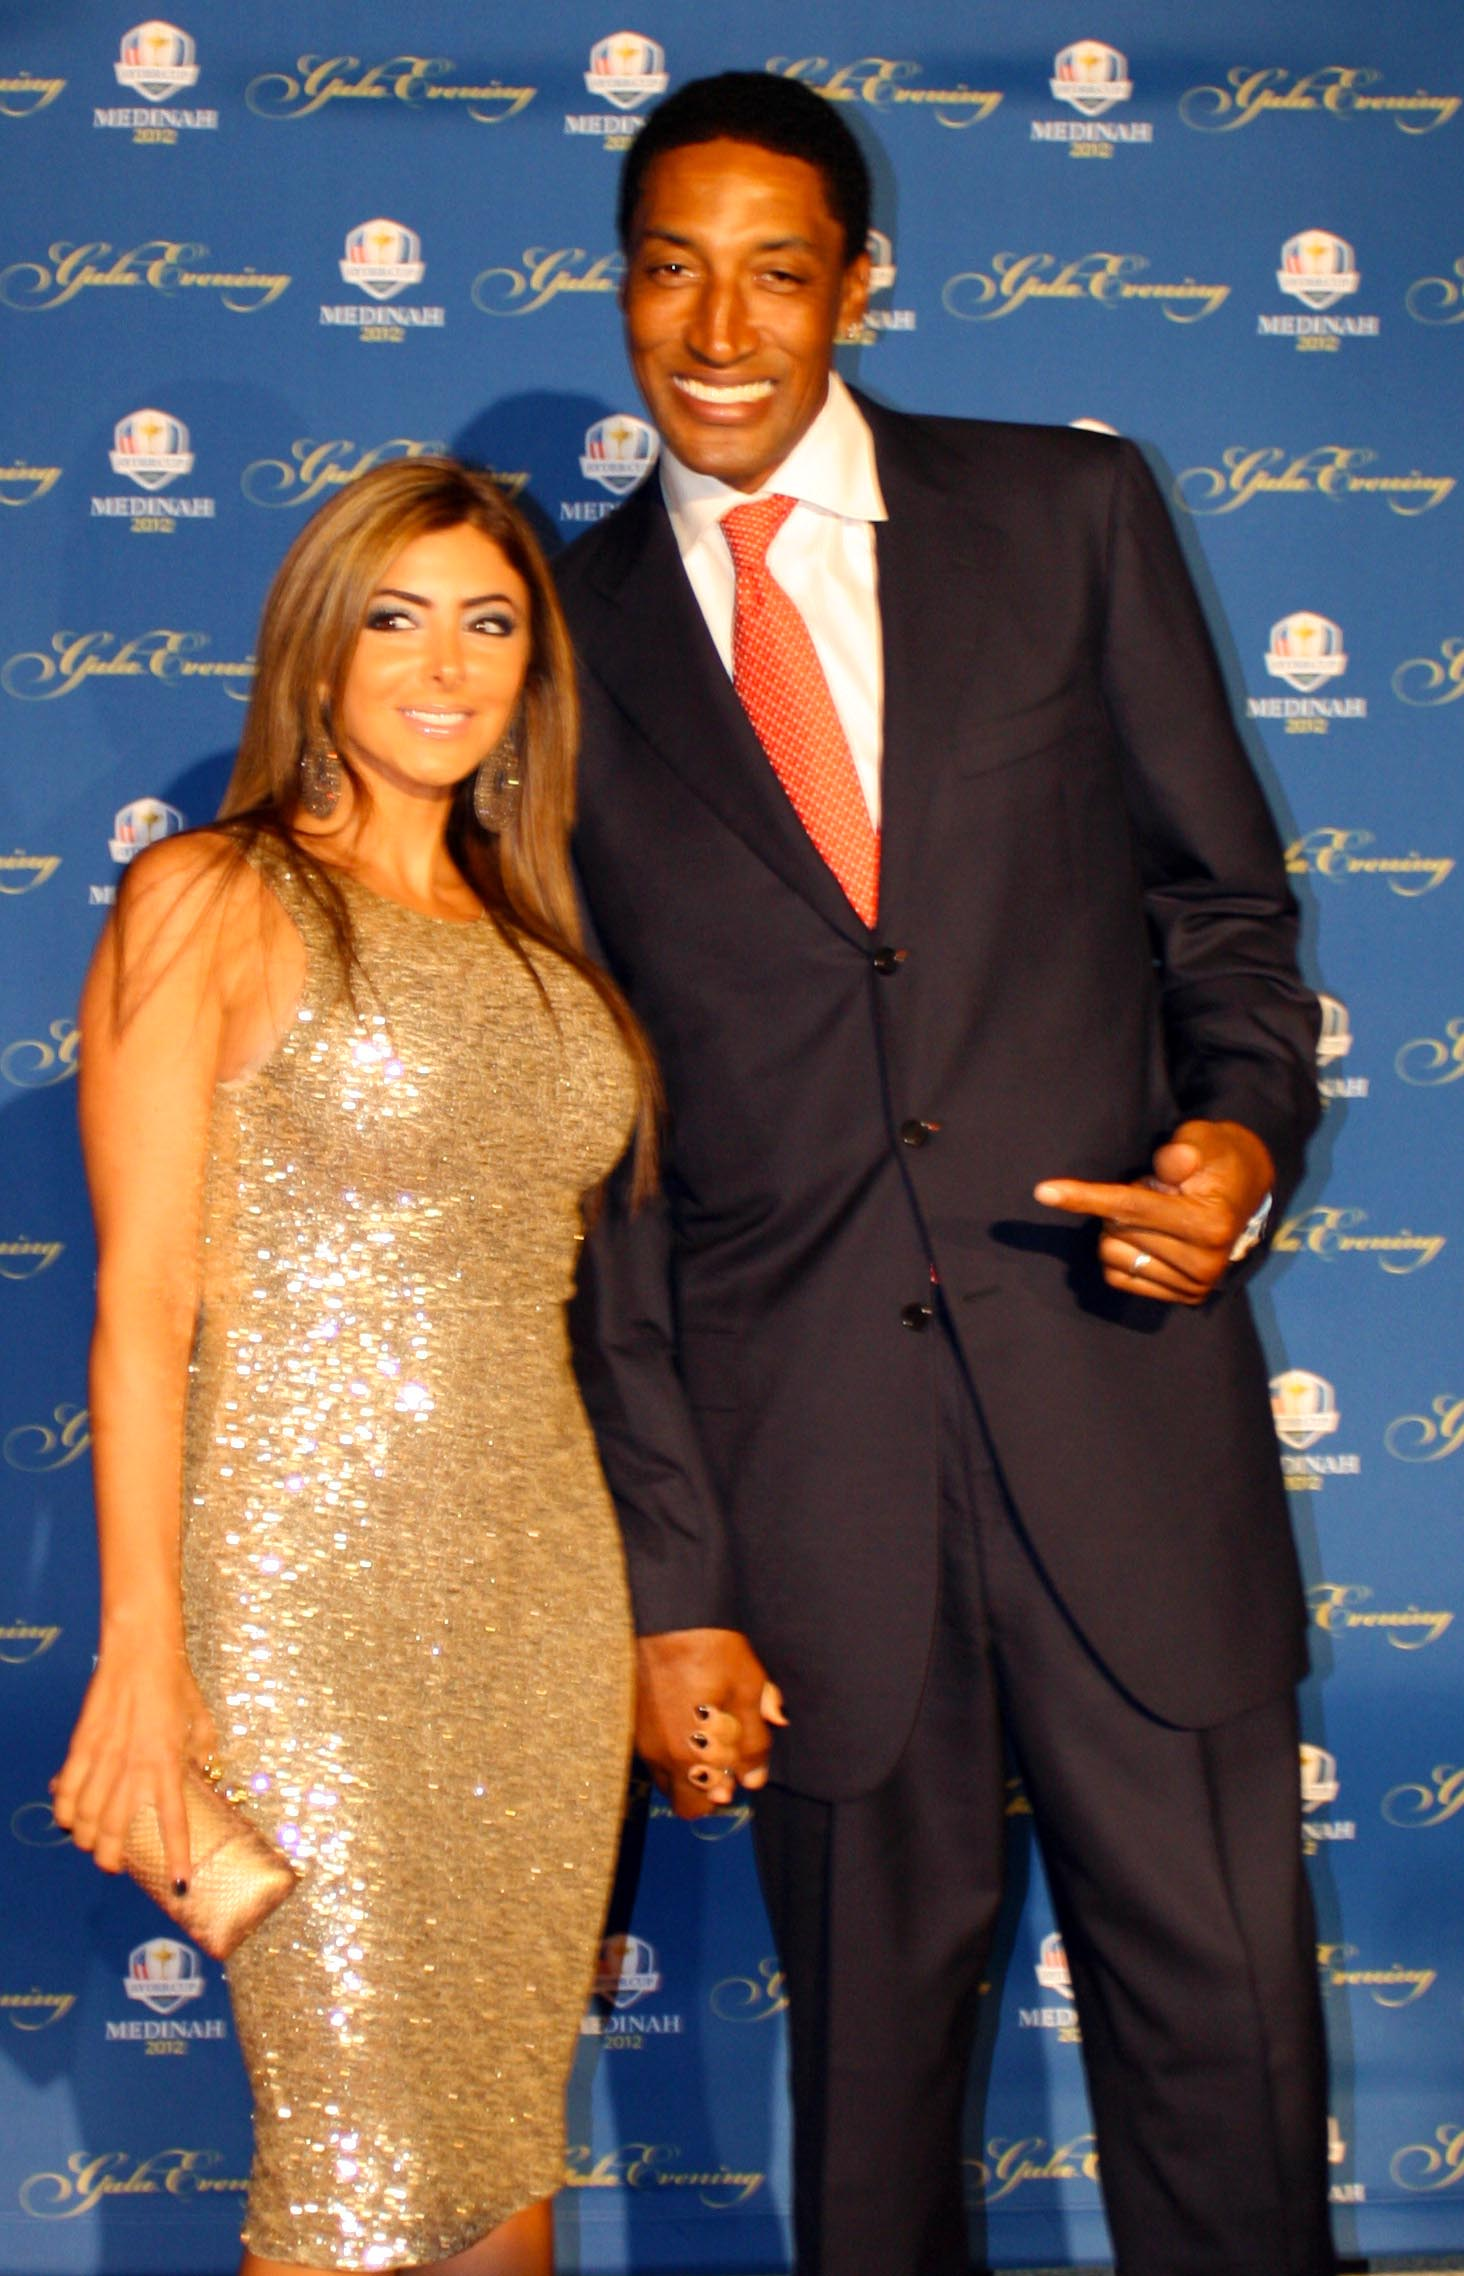 Micheal Jordan Dumped His Black Wife For A White One Ign Boards